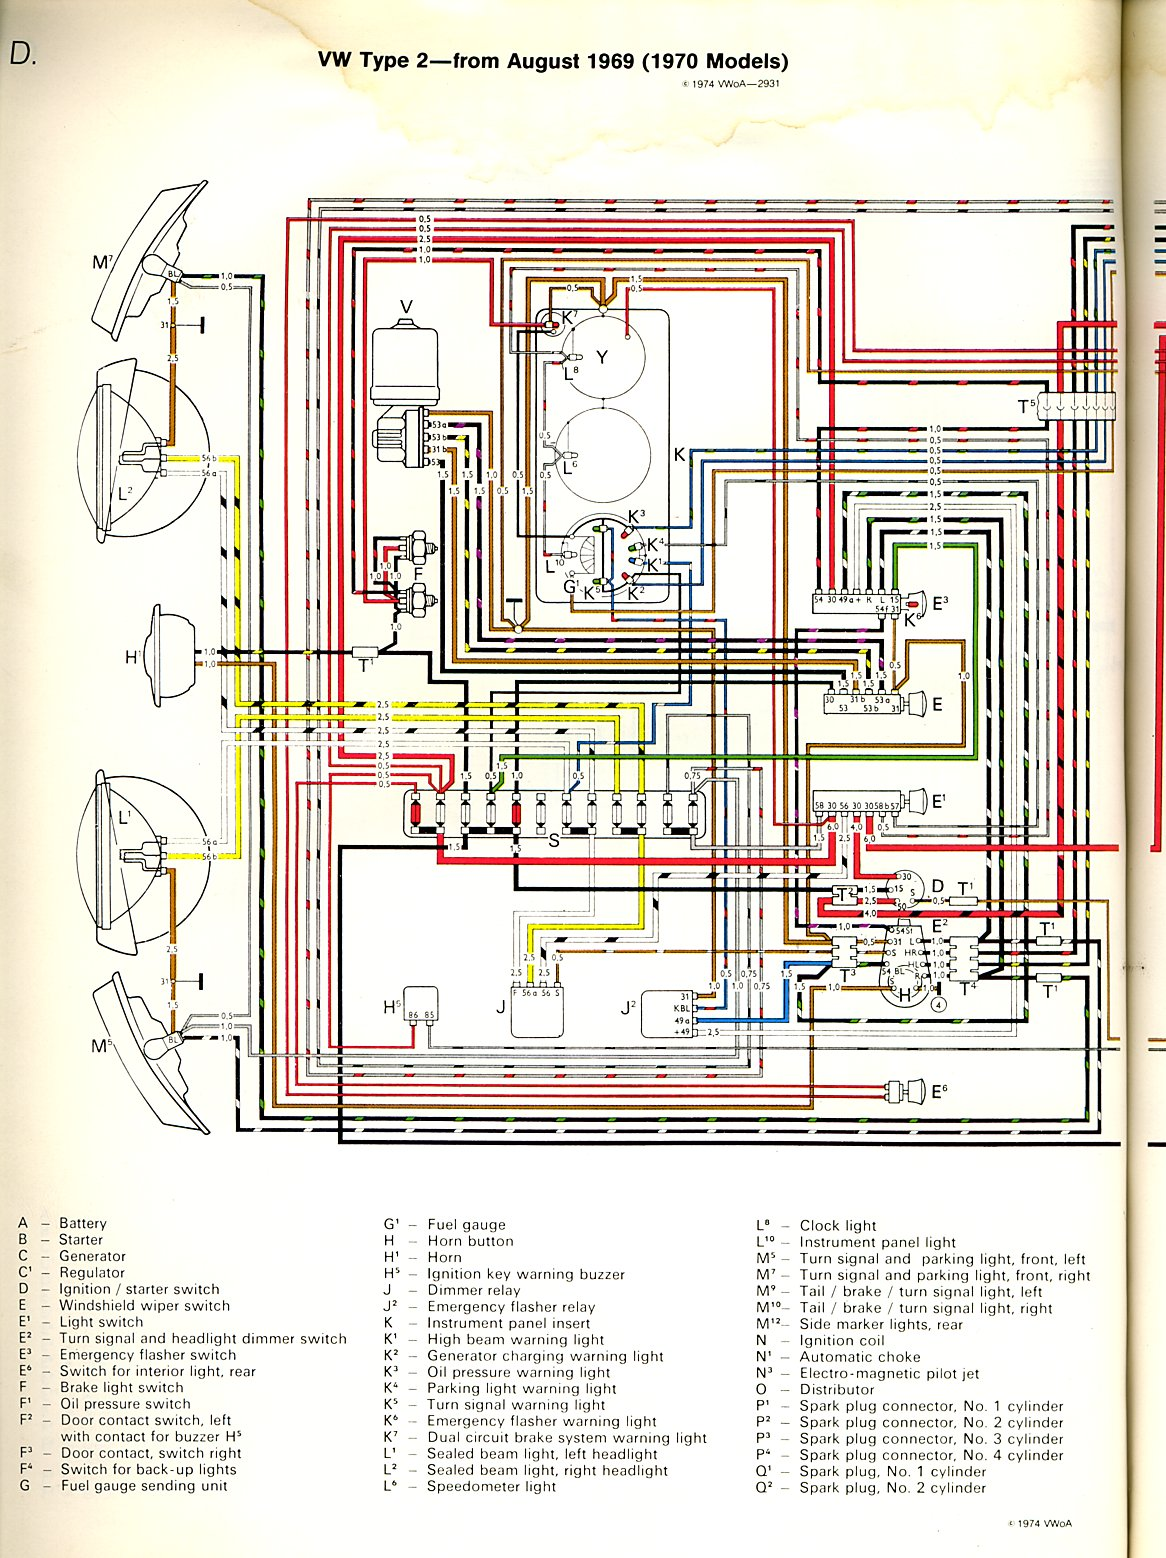 baybus_70a thesamba com type 2 wiring diagrams 1968 vw bus wiring diagram at bakdesigns.co